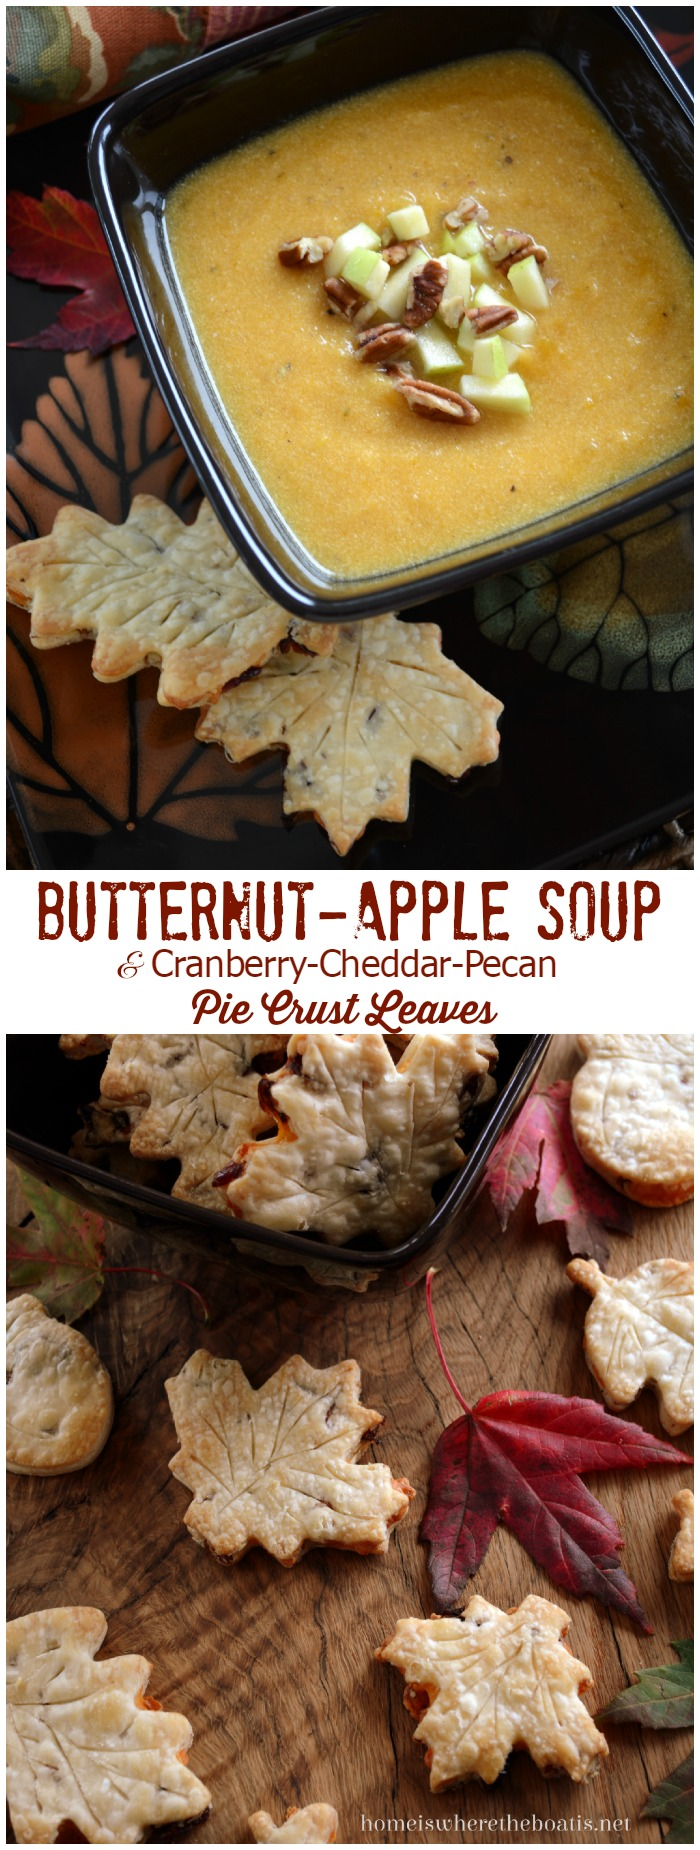 Butternut-Apple Soup with Cranberry-Cheddar-Pecan Pie Crust Leaves! A sweet and savory soup for fall, serve with pie crust leaf sandwiches of cranberry, cheddar and pecan! | homeiswheretheboatis.net #fall #soup #recipes